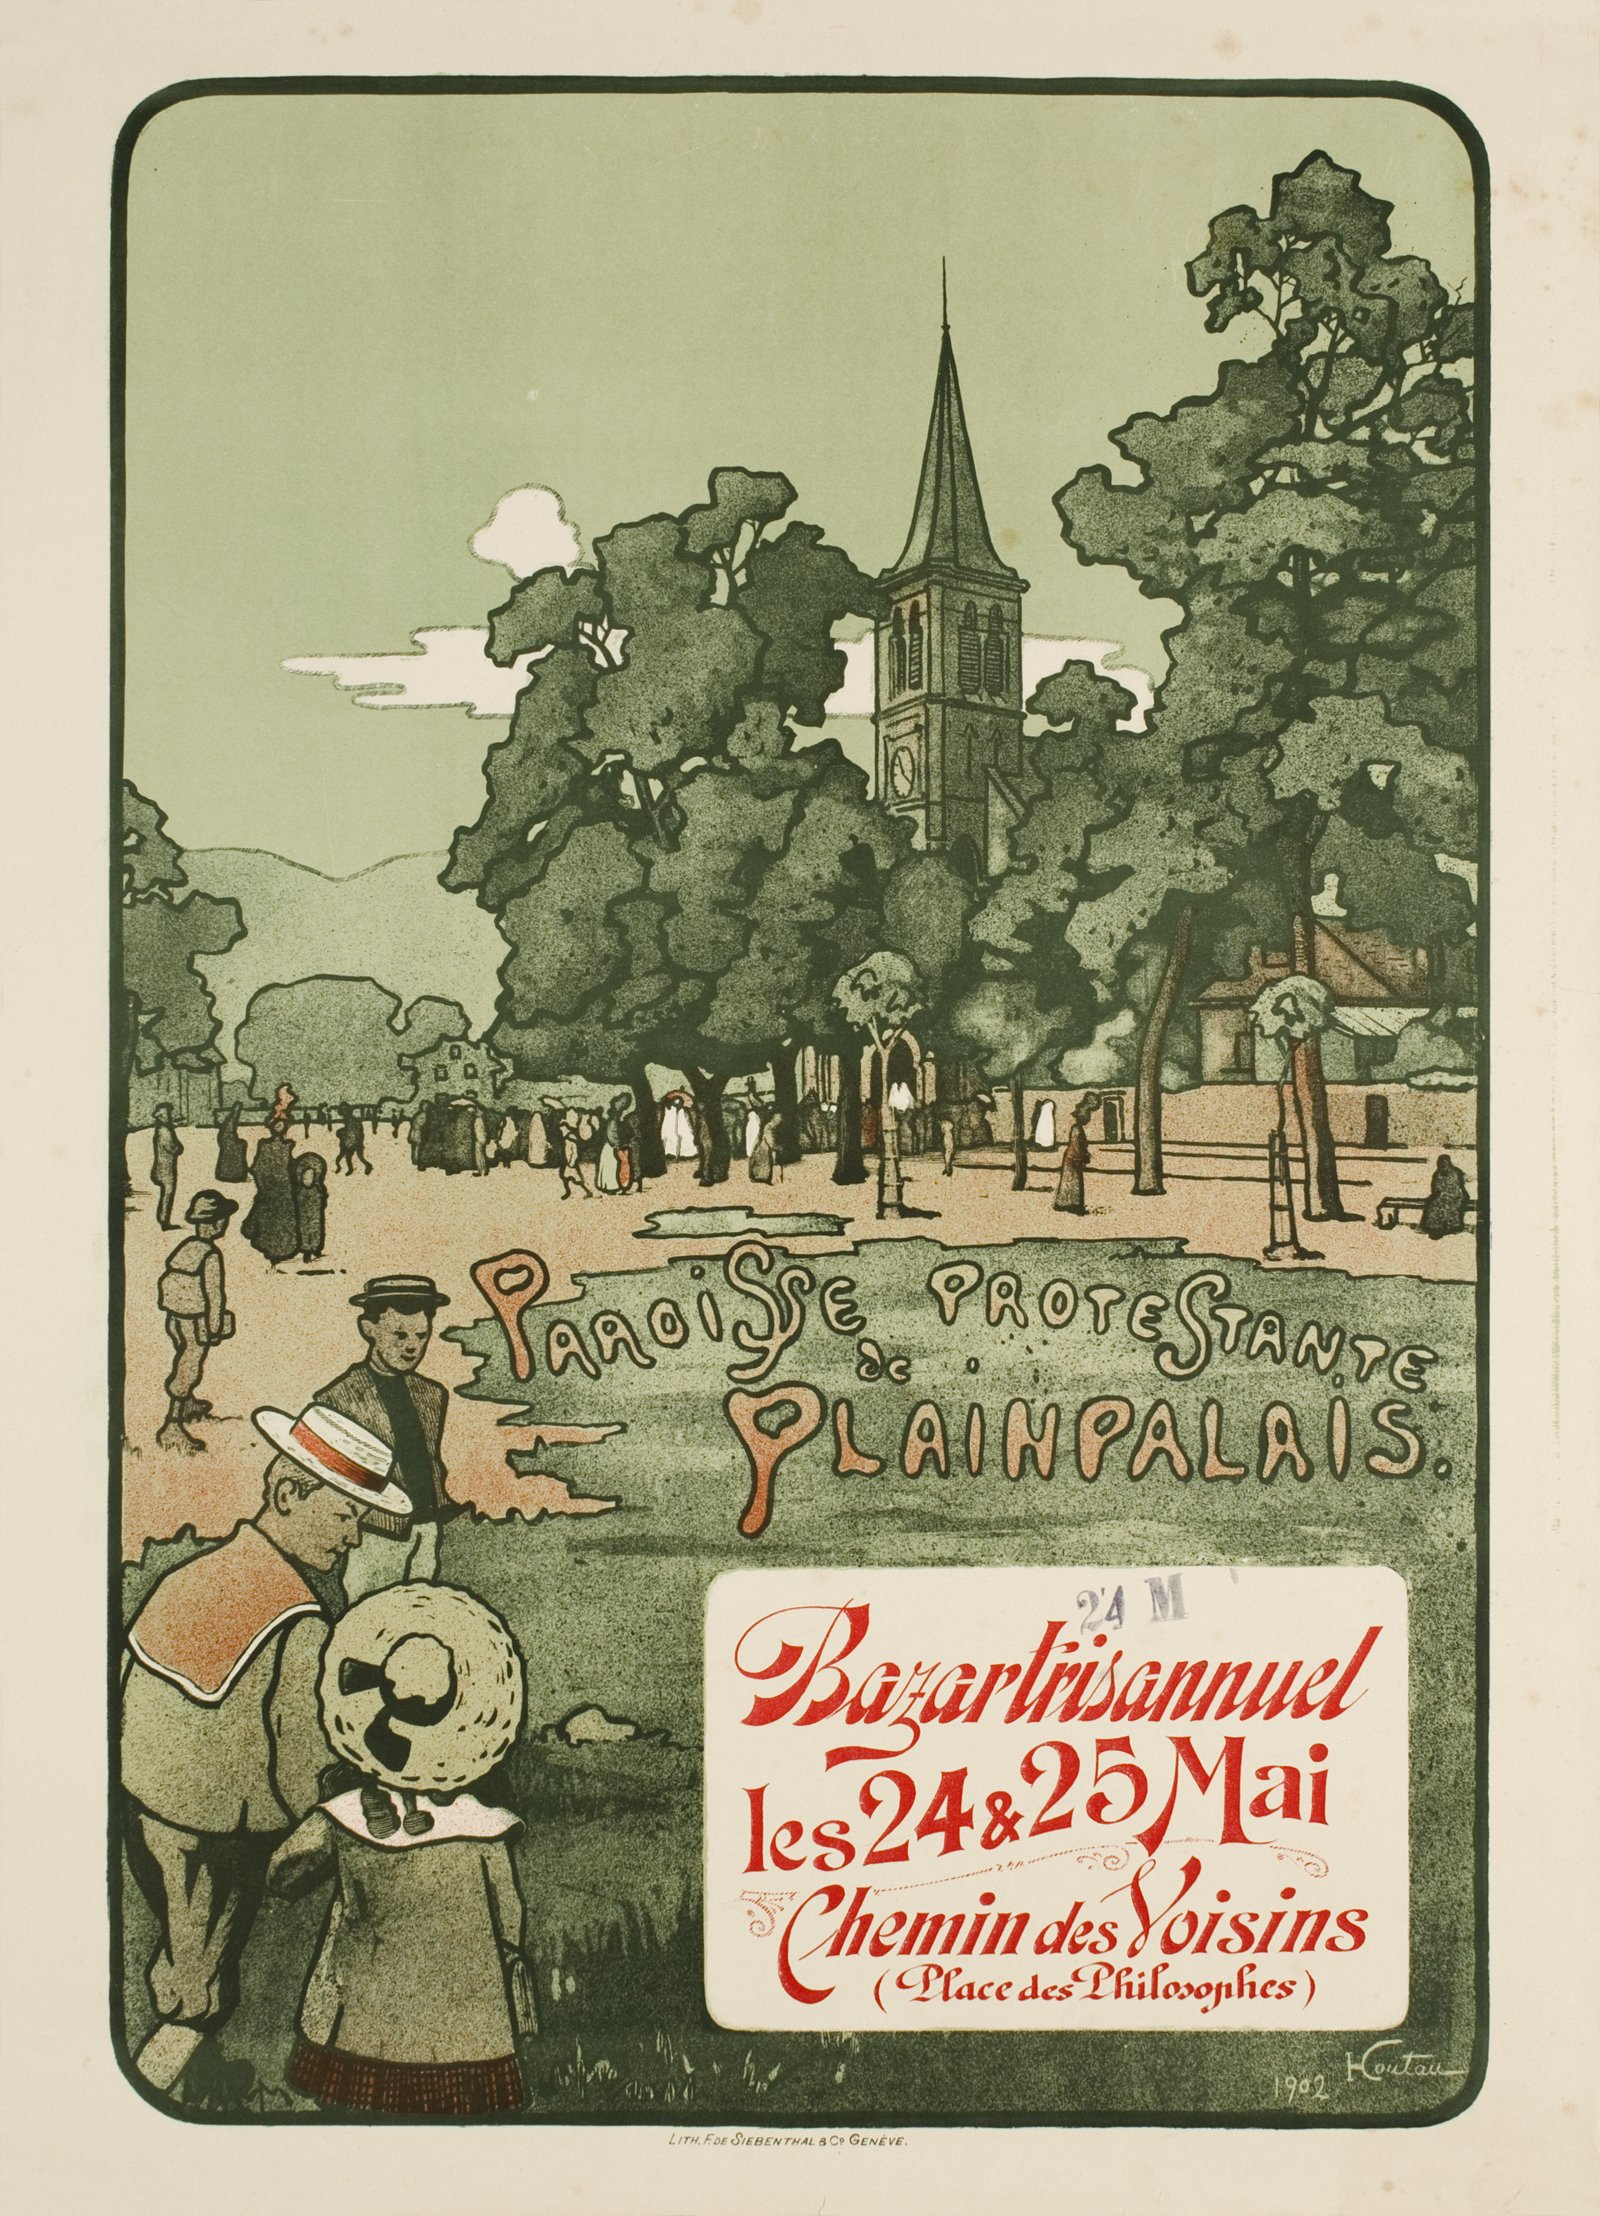 Vintage poster of the Paroisse protestante de Plainpalais.